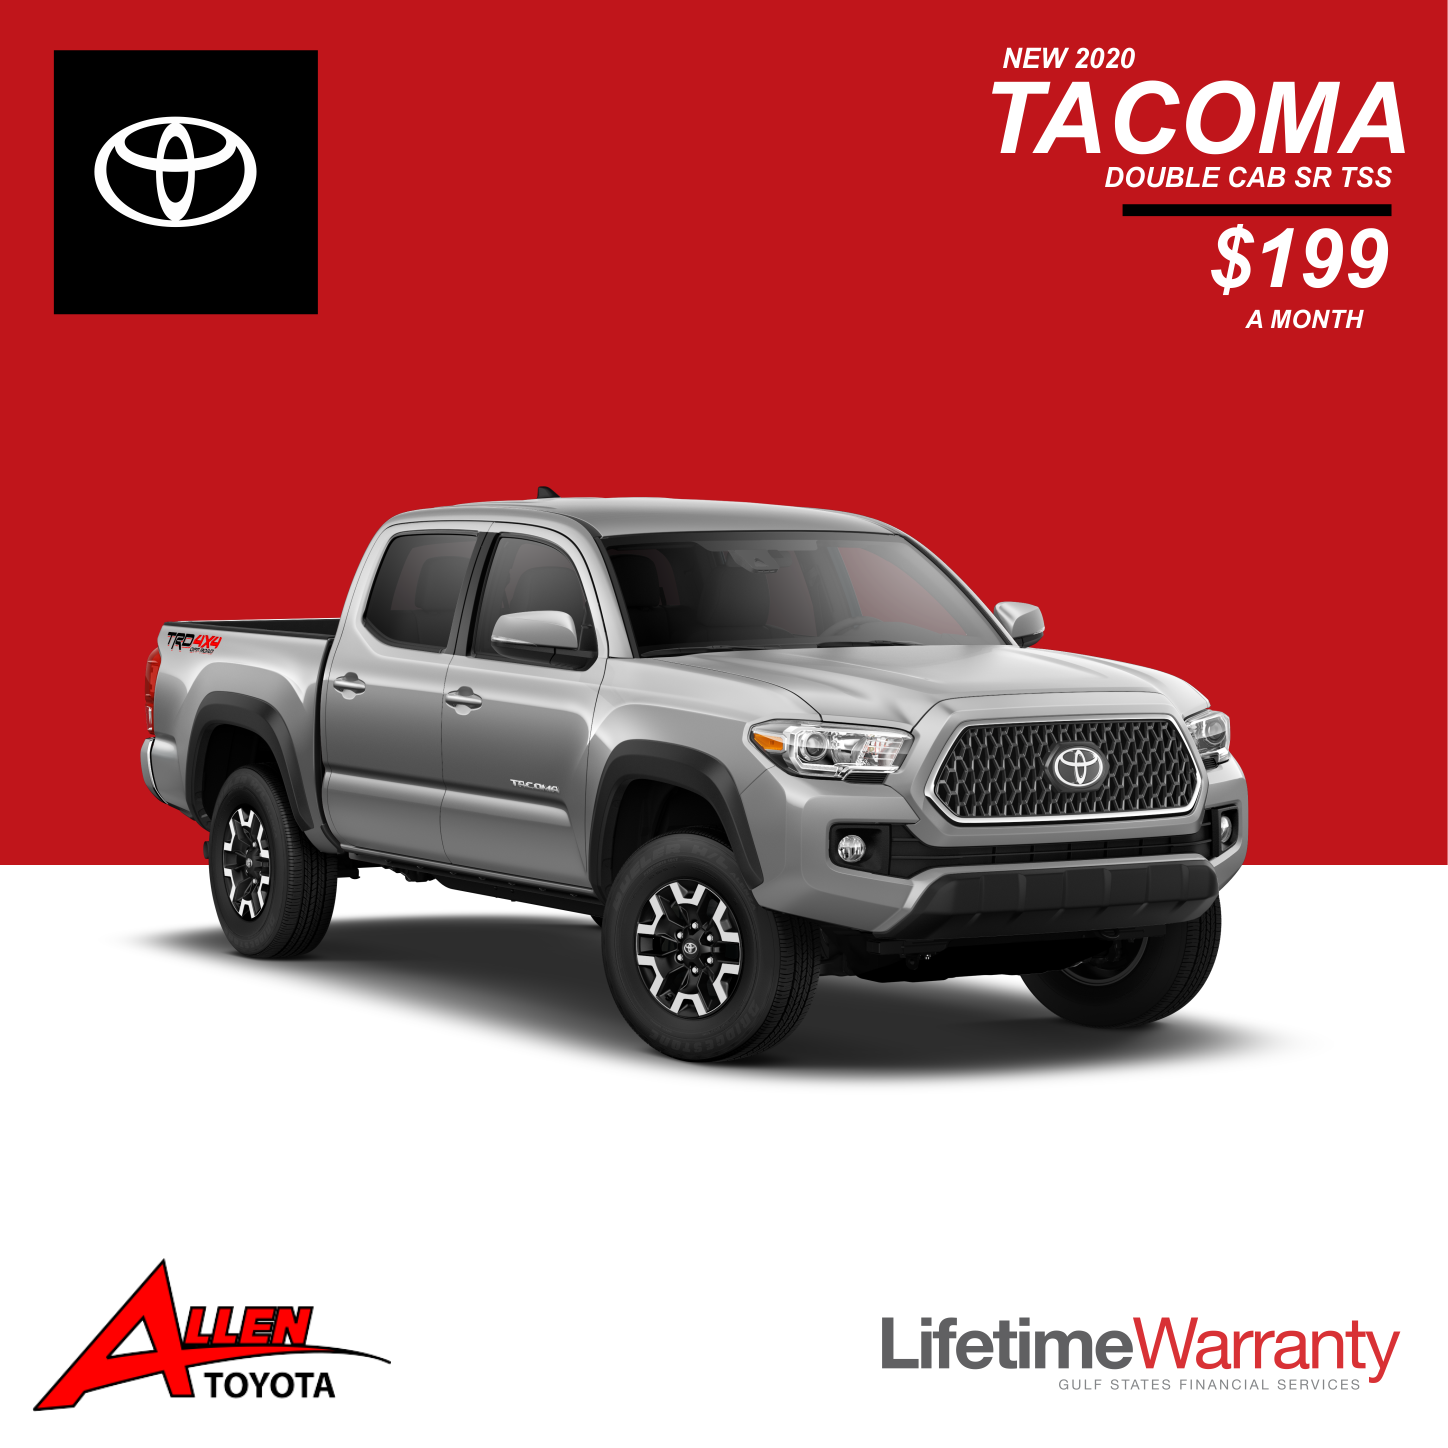 Get a great lease on a new 2020 Tacoma!